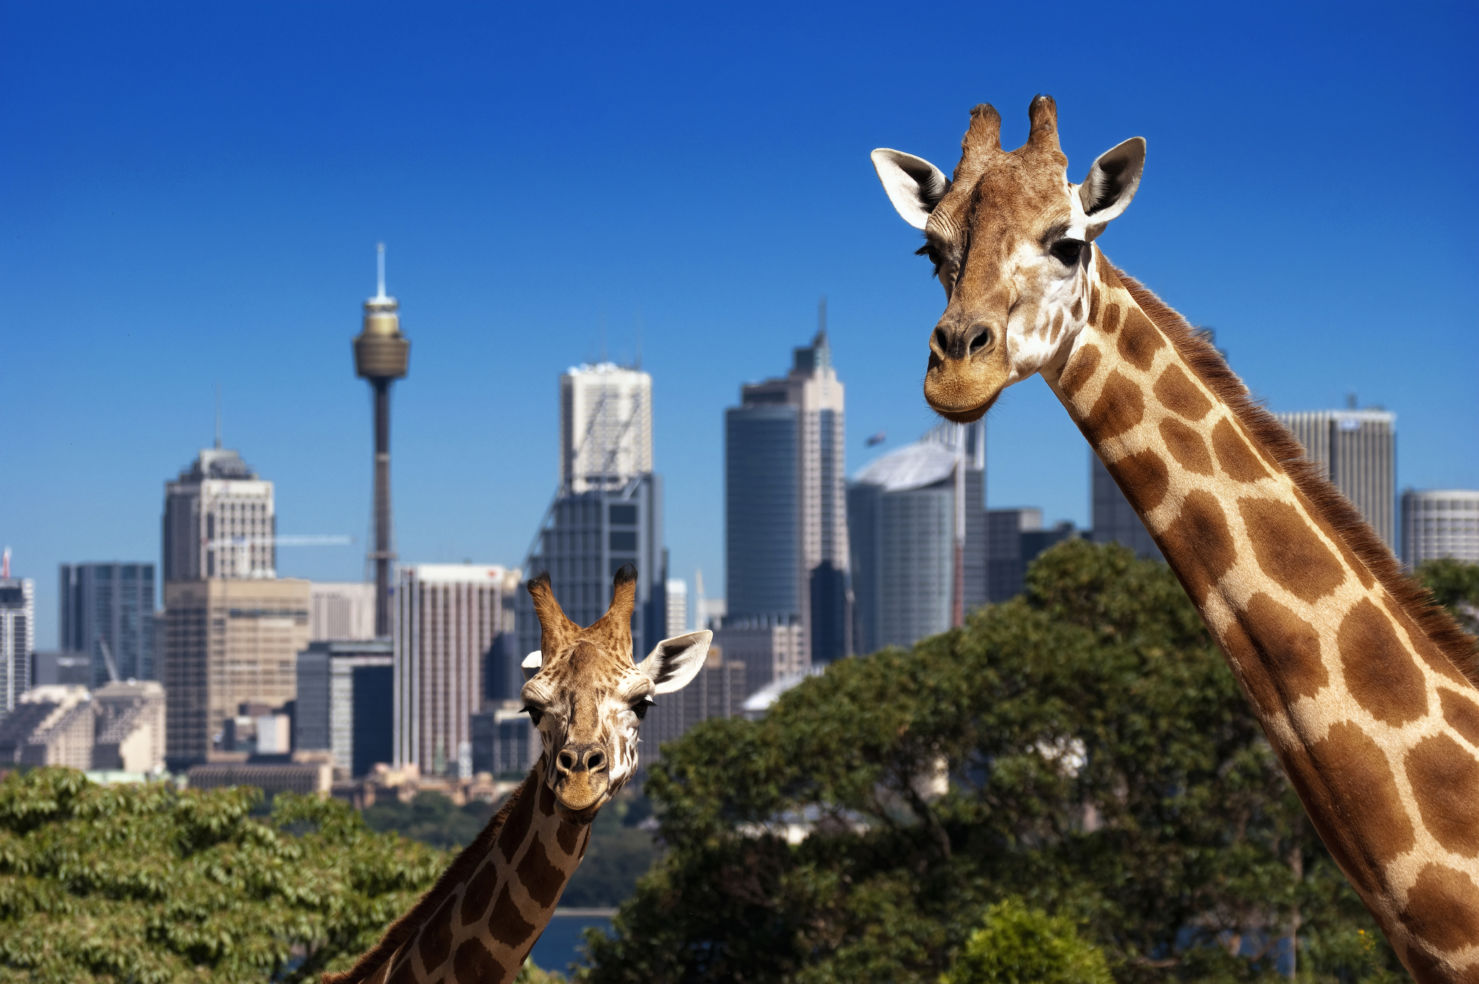 Two giraffes in Taronga Zoo Sydney in front of skyline